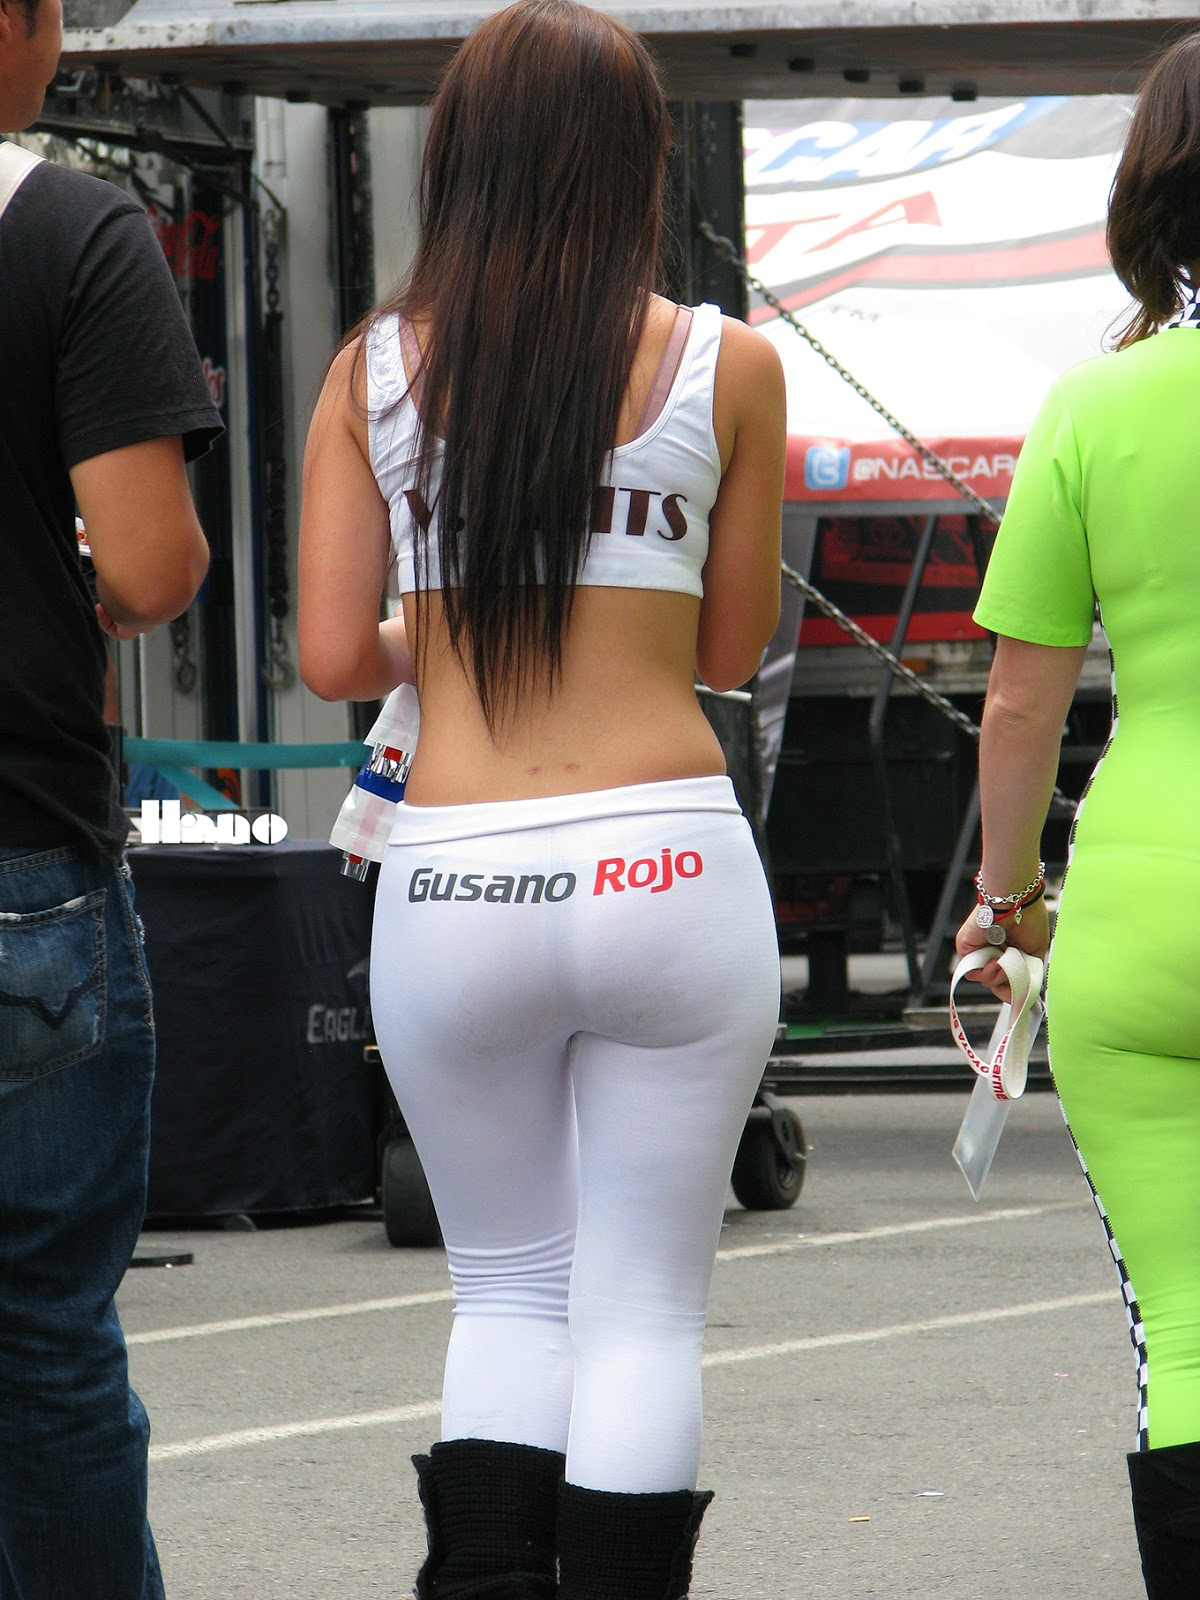 Tight spandex shorts pawg candid wide hips juicy ass mod - 1 7